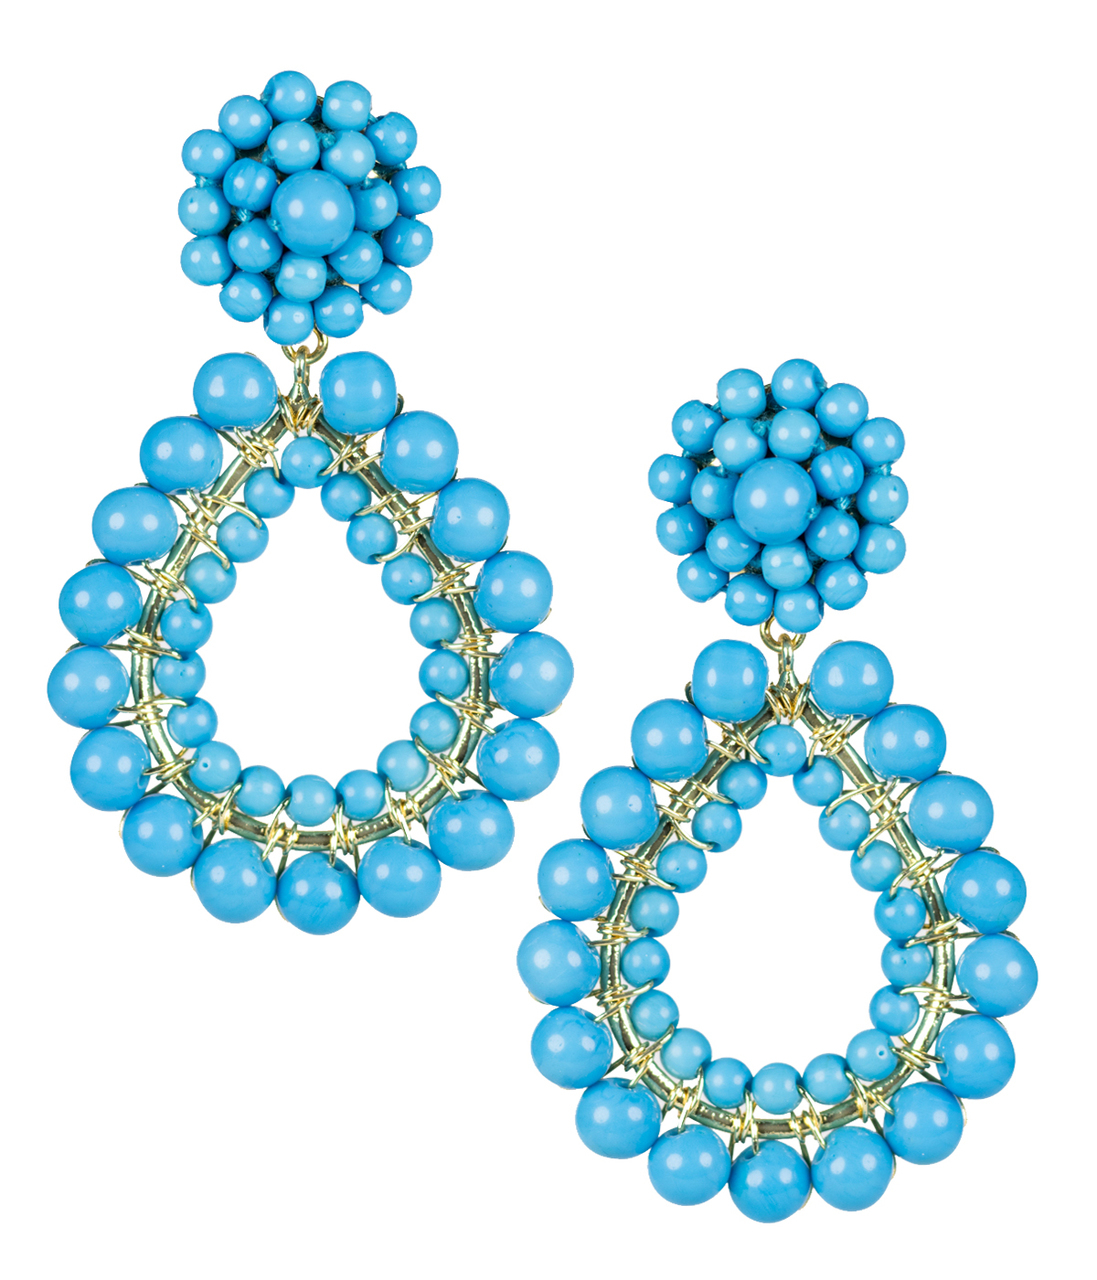 Margo Turquoise Earrings by LISI LERCH